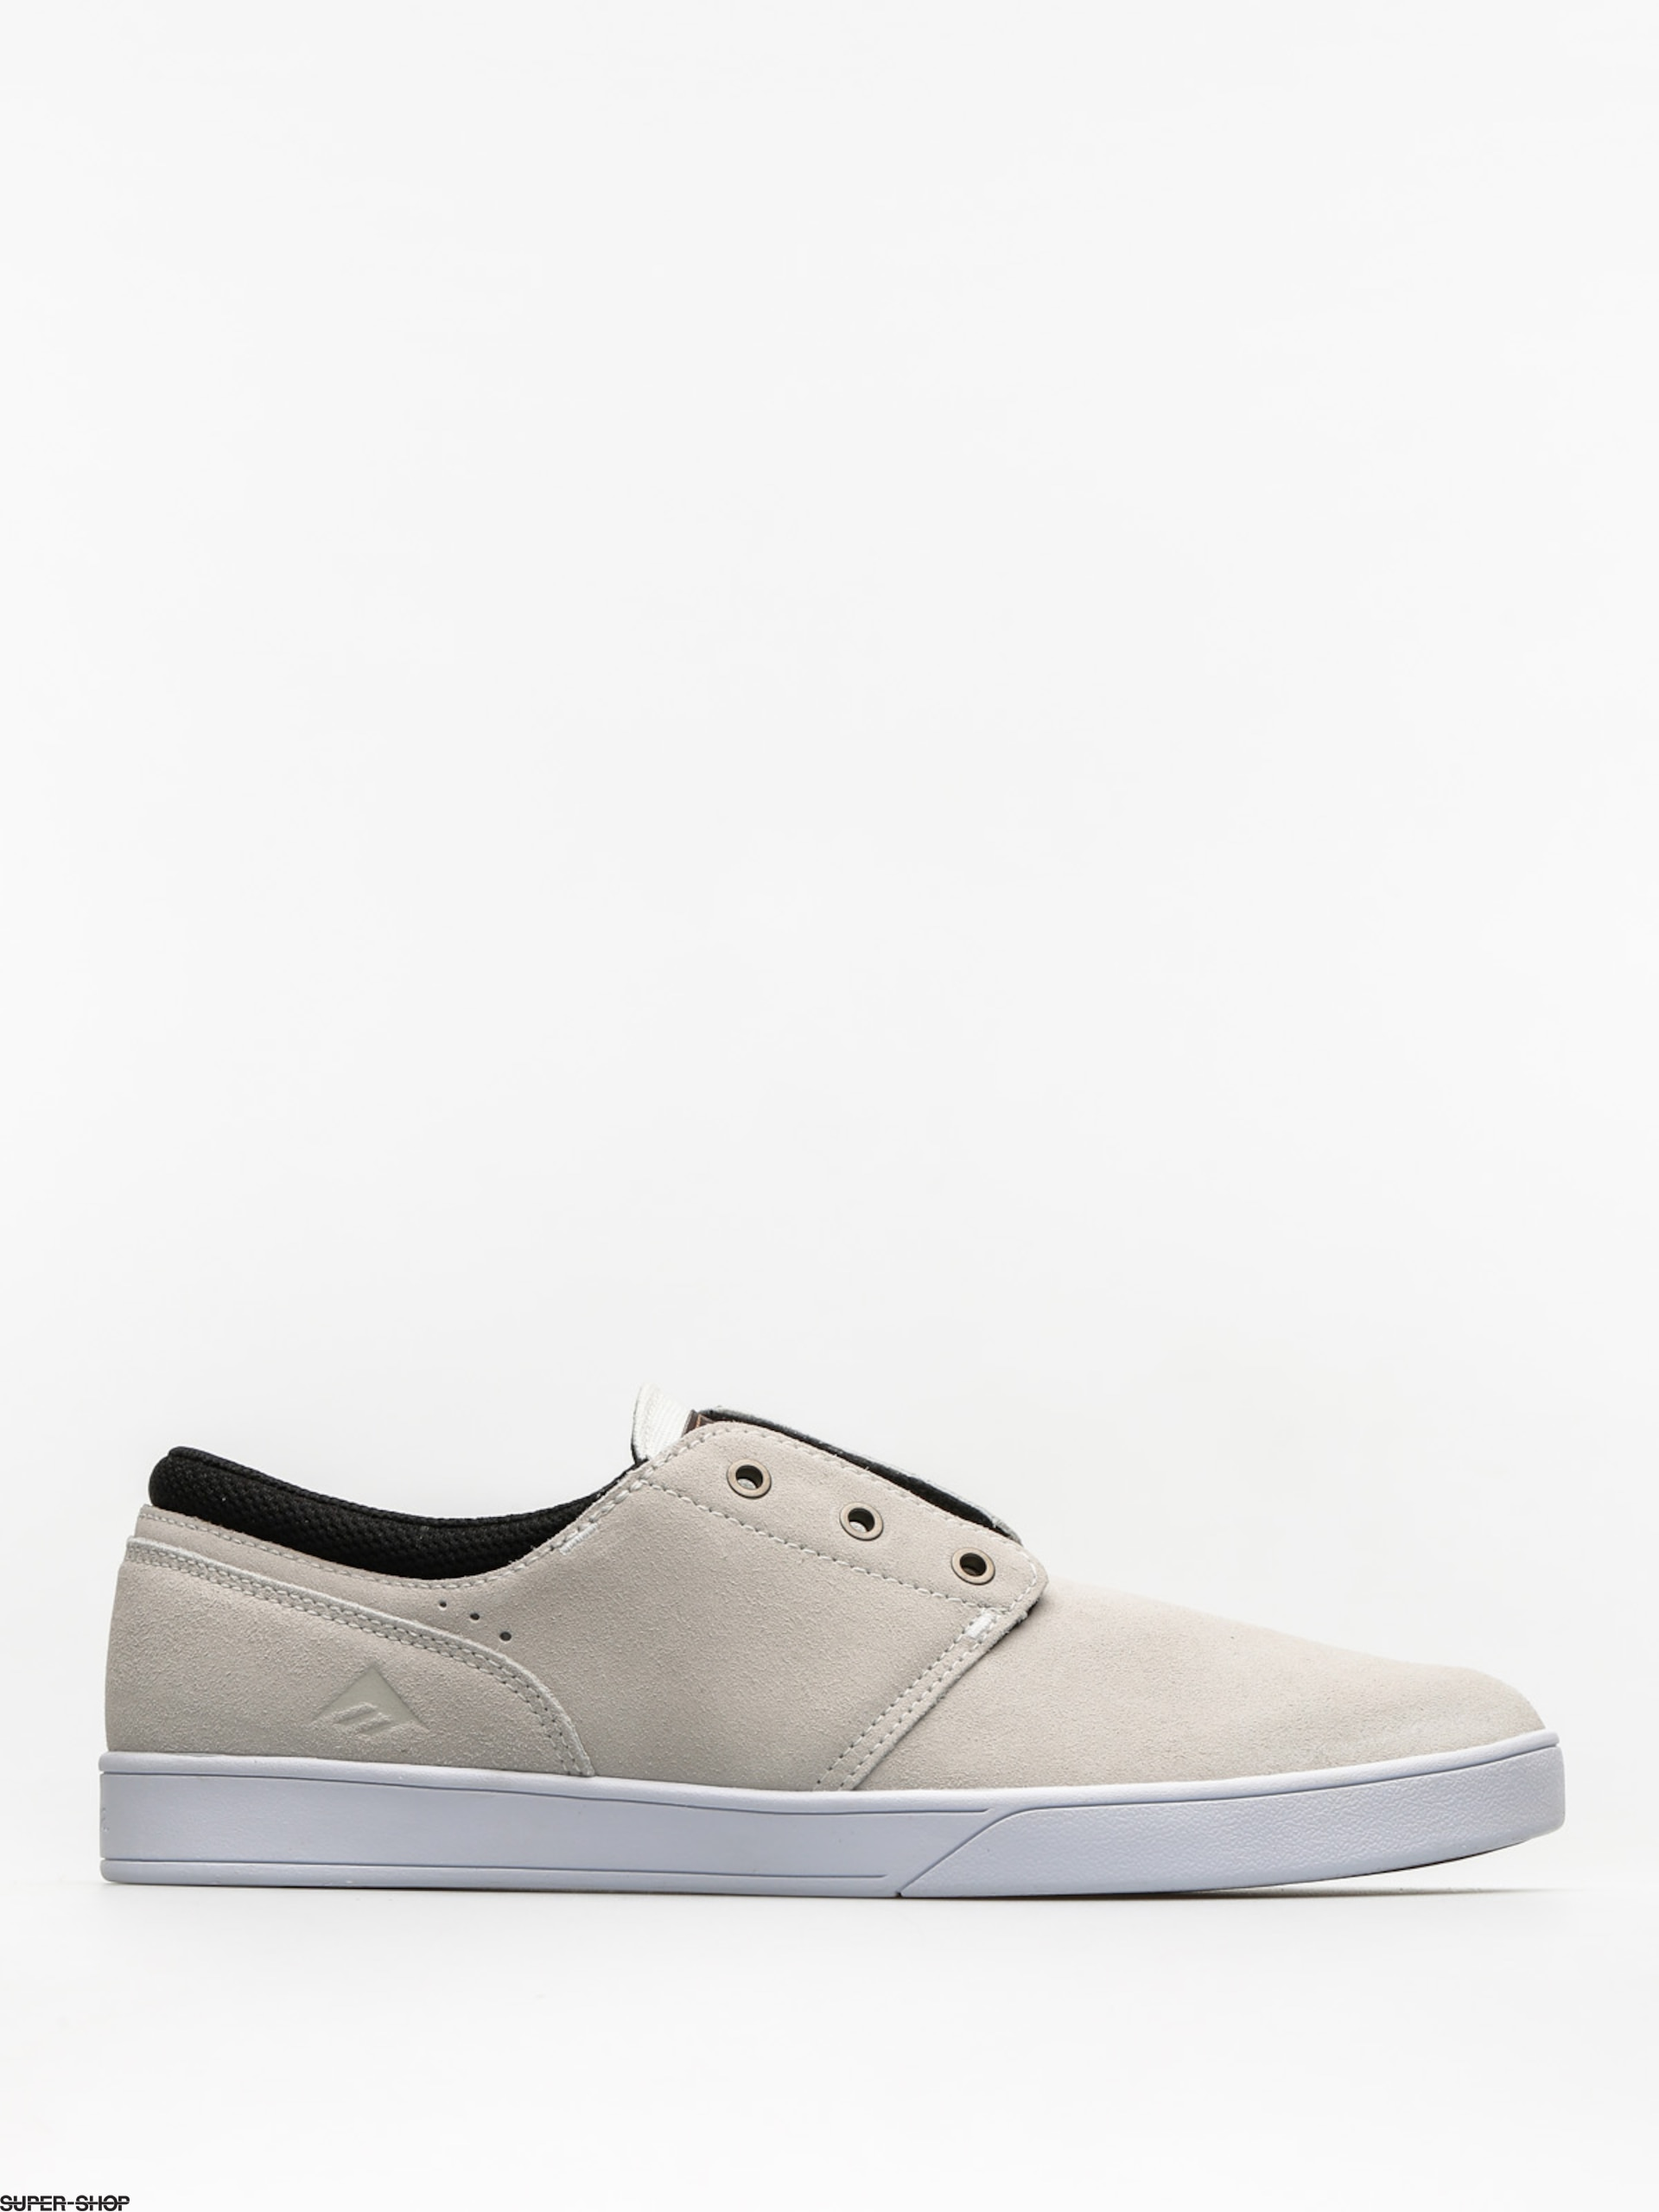 Emerica Shoes The Figueroa (white/white/black)